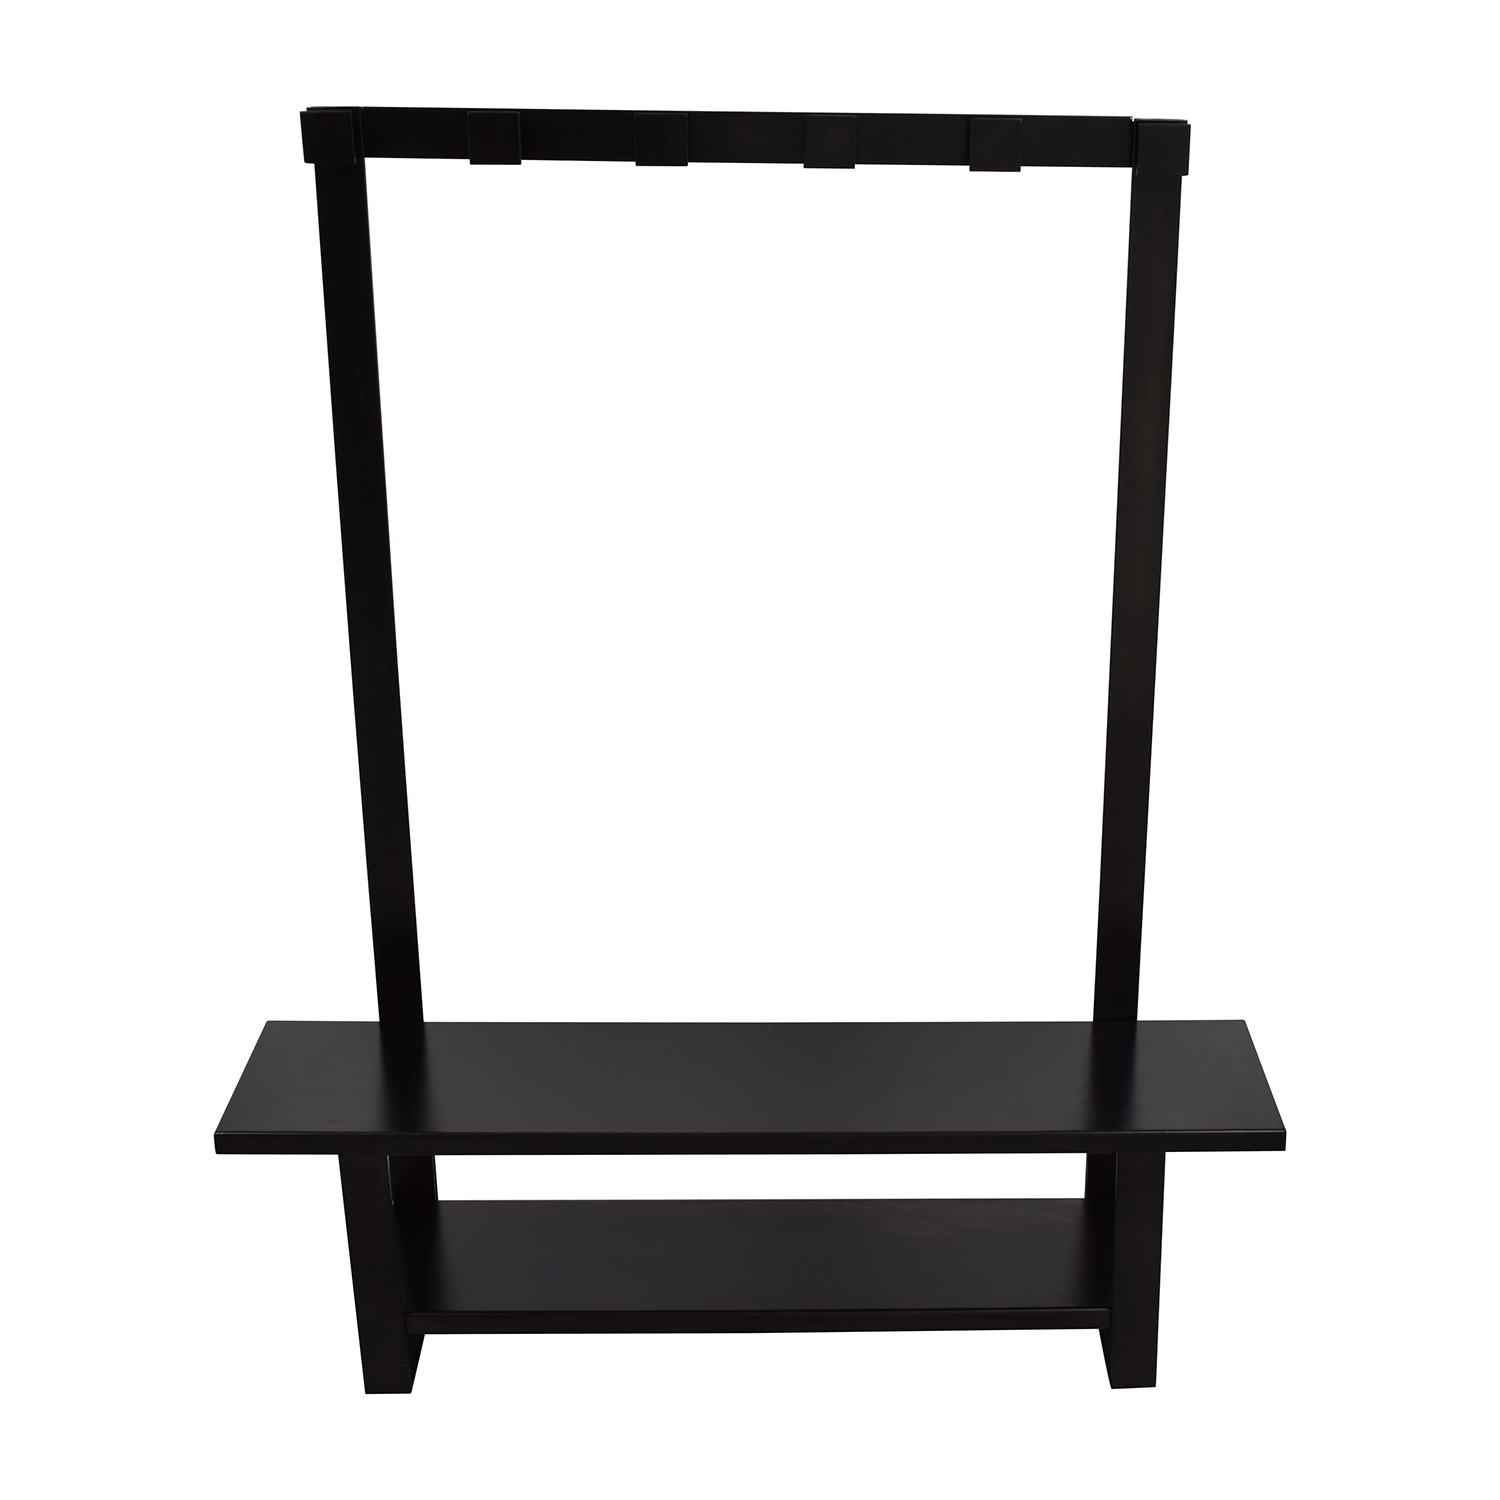 Crate and Barrel Crate & Barrel Entry Bench with Hooks dimensions